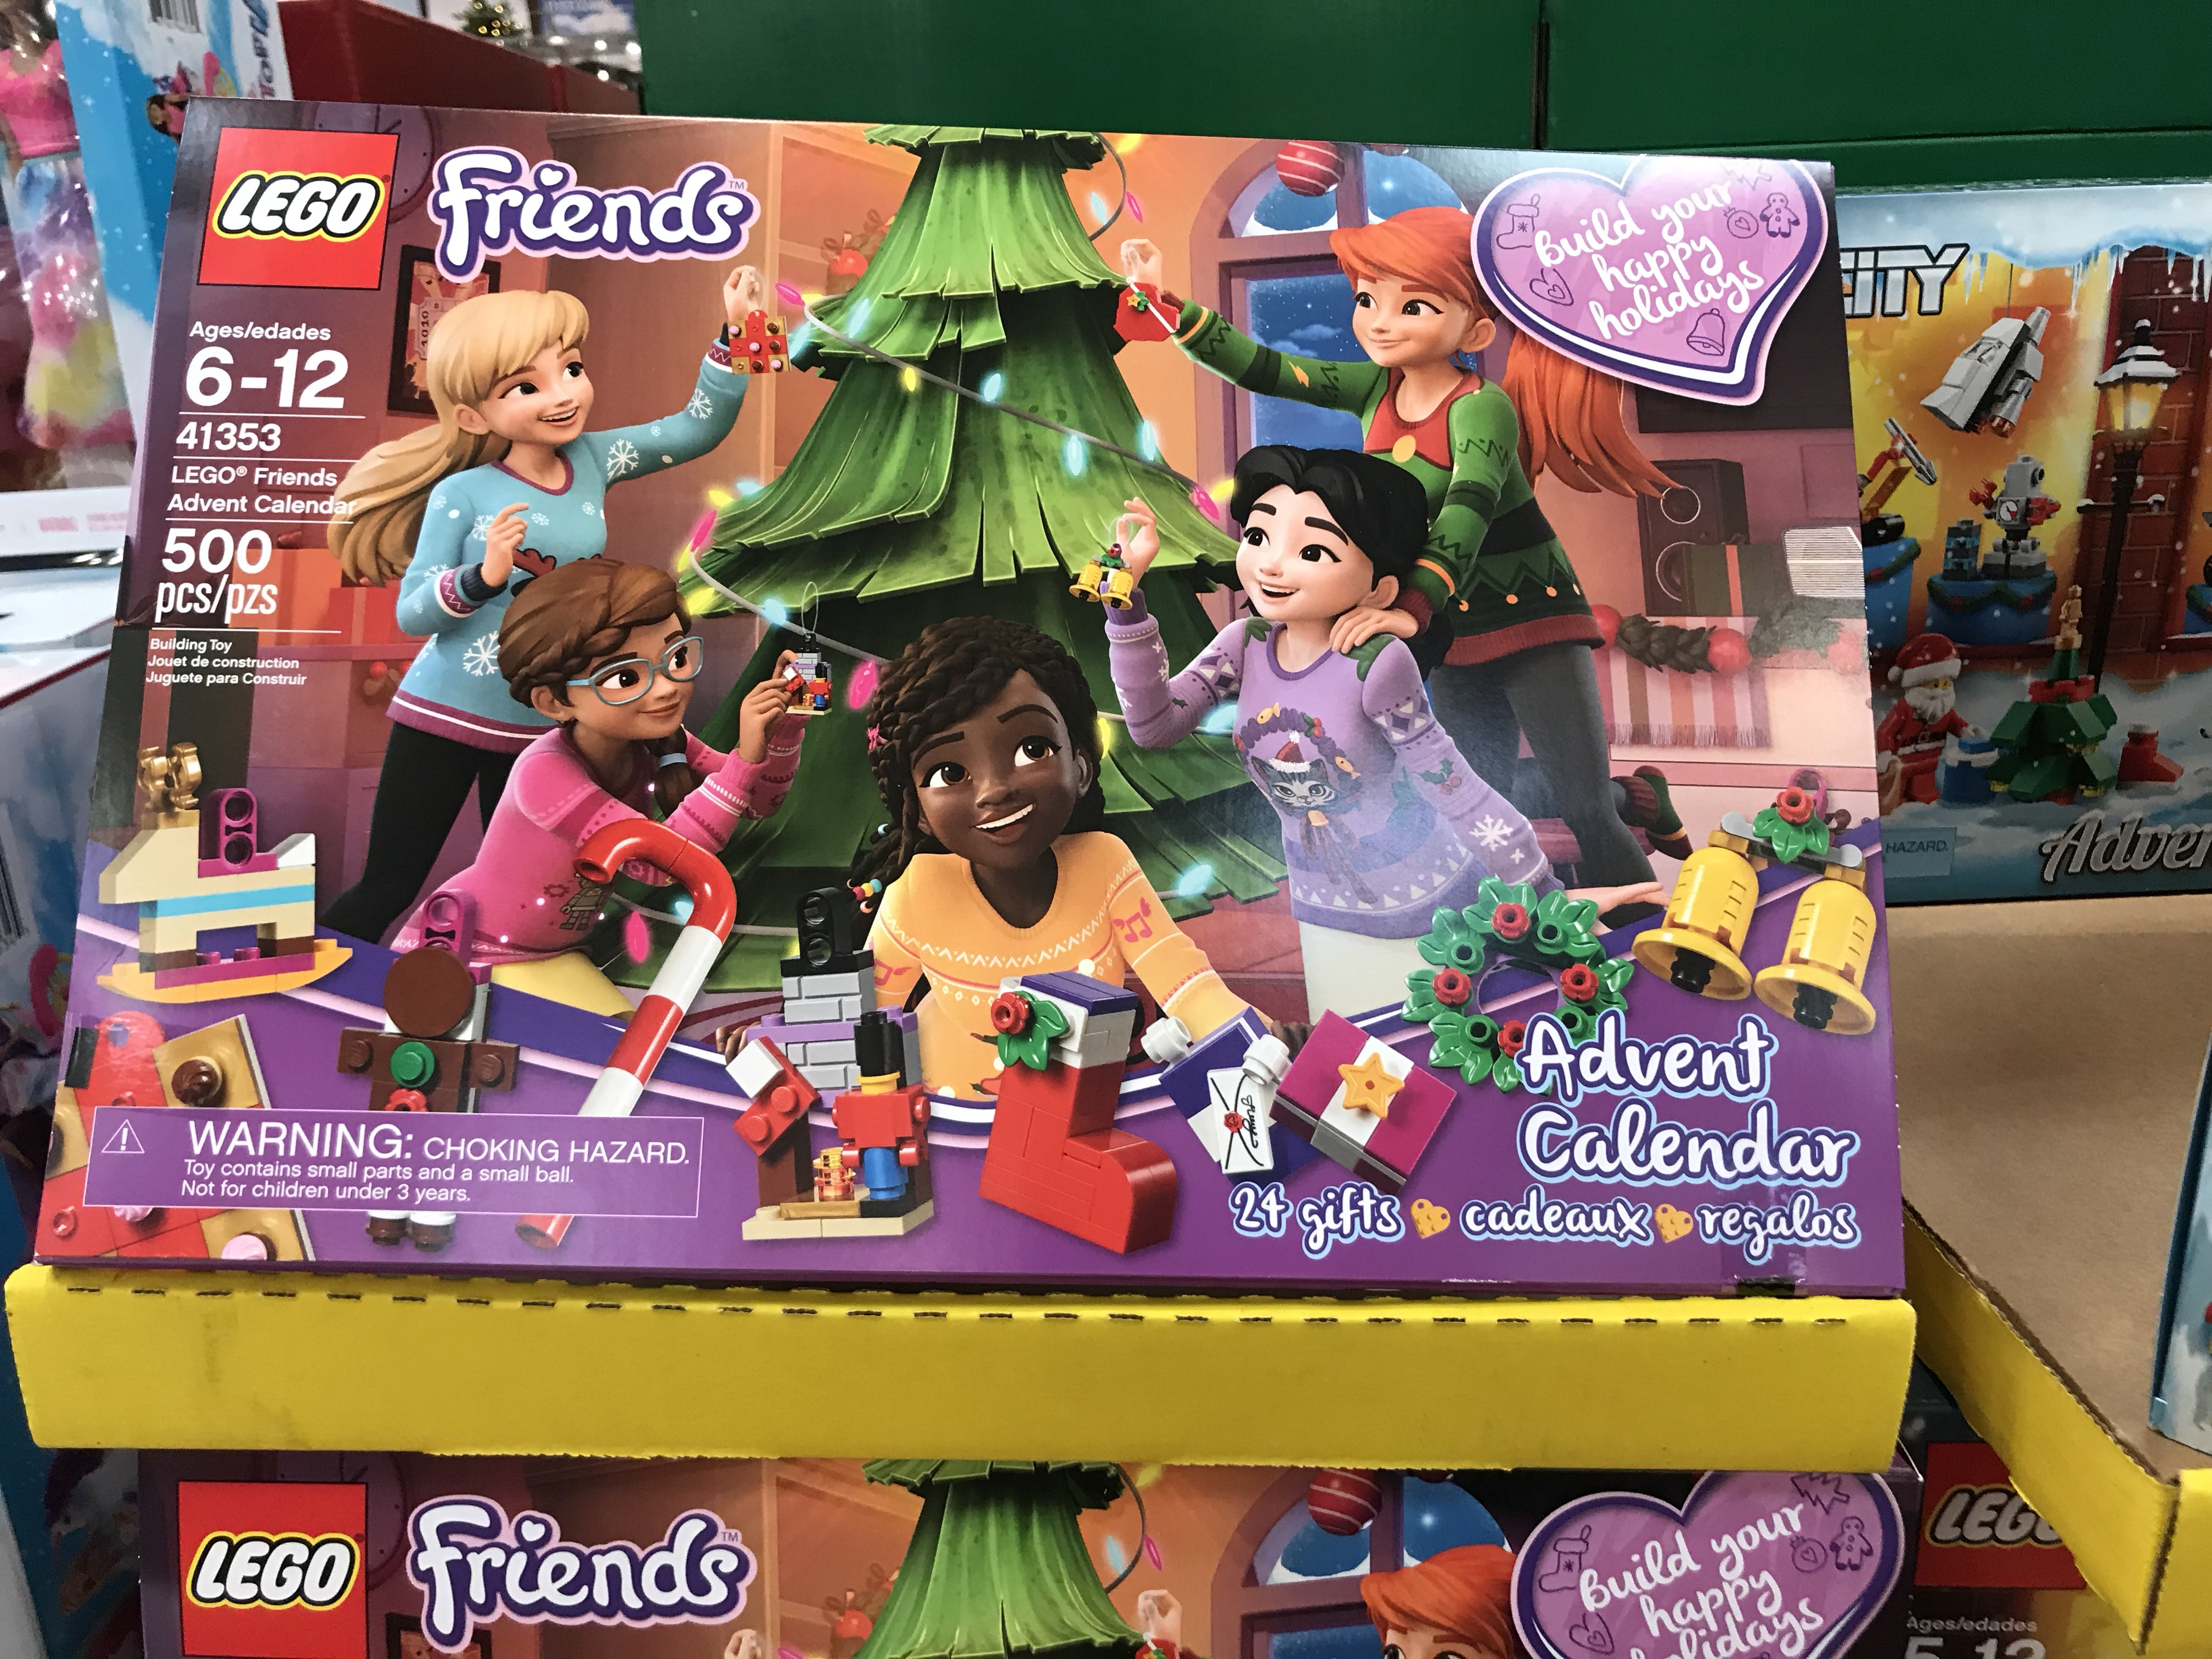 best 2018 advent calendars for kids and adults – LEGO Friends Advent Calendar